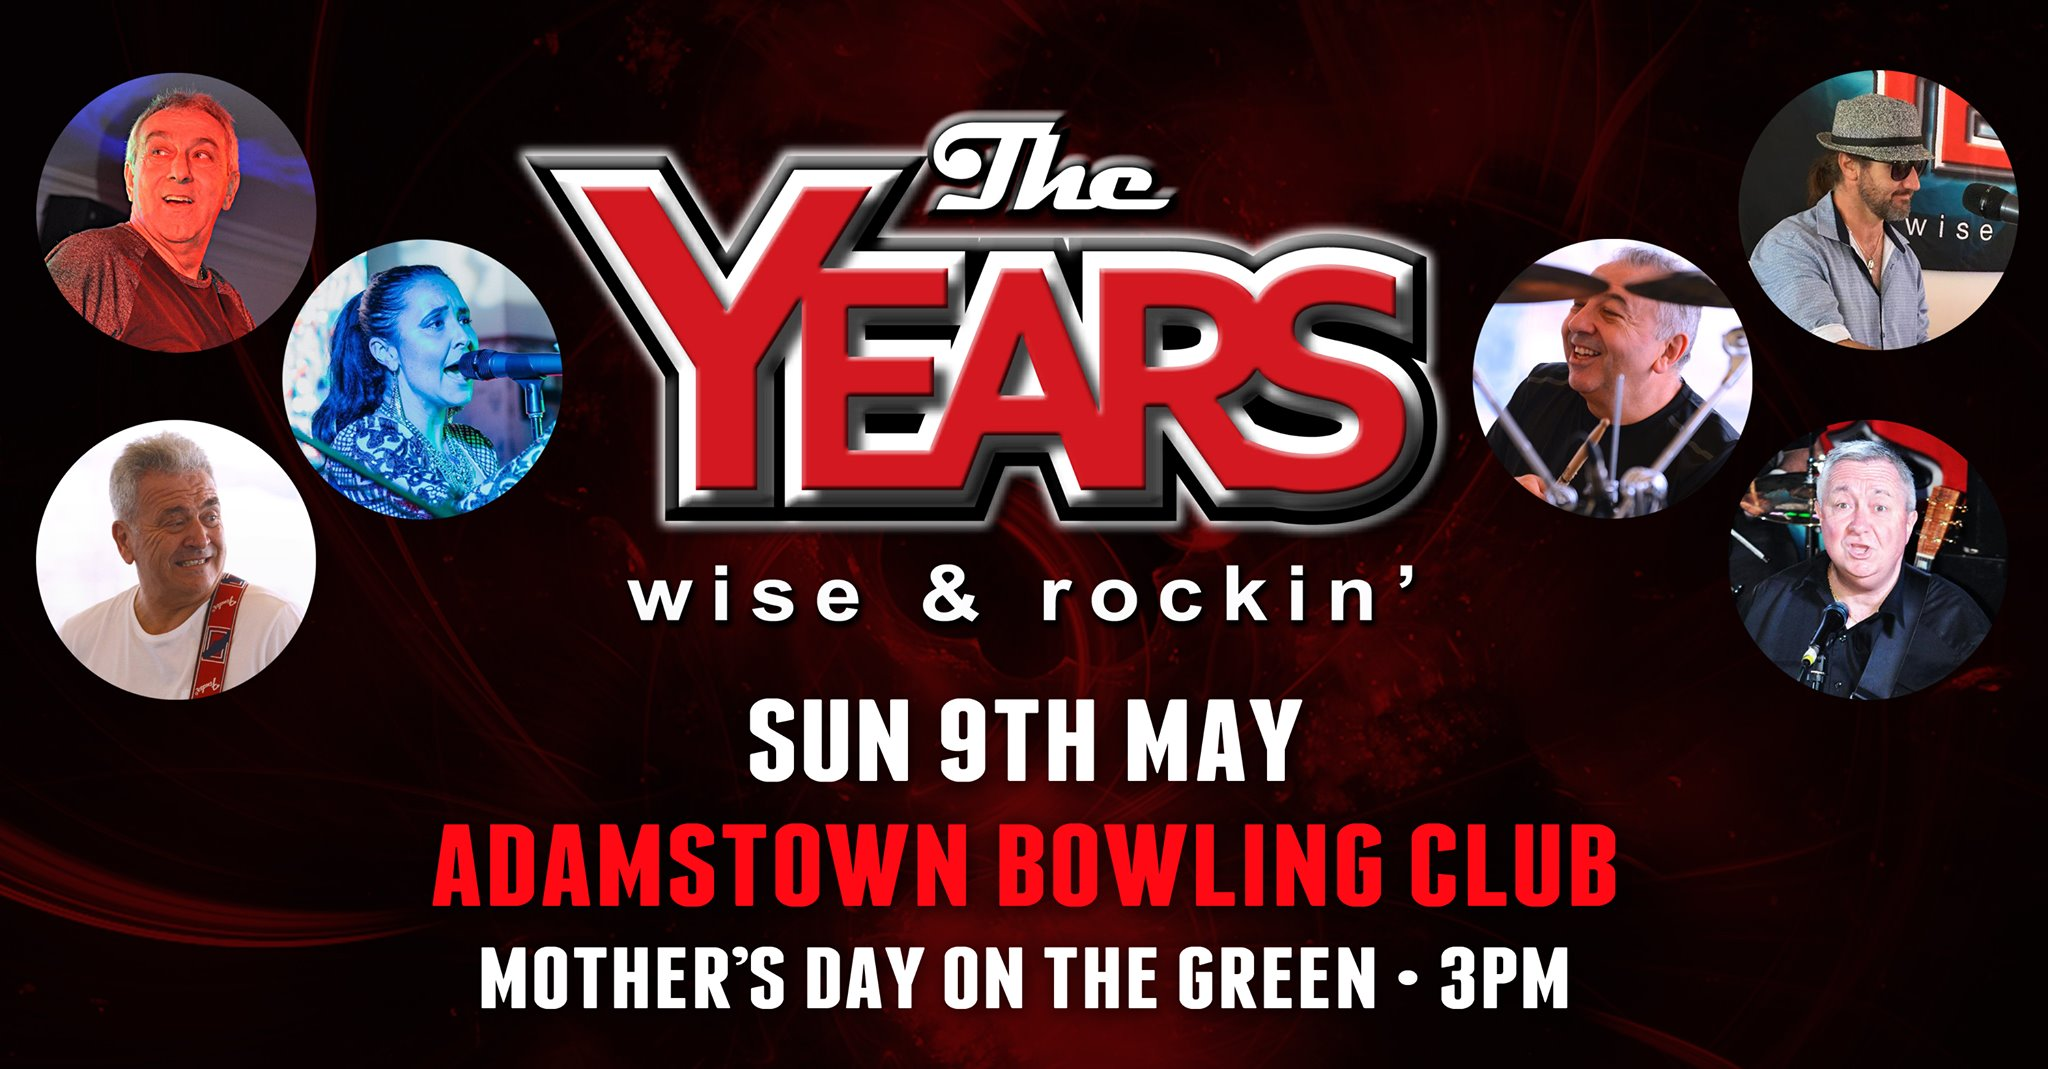 The Years at Adamstown Bowling Club